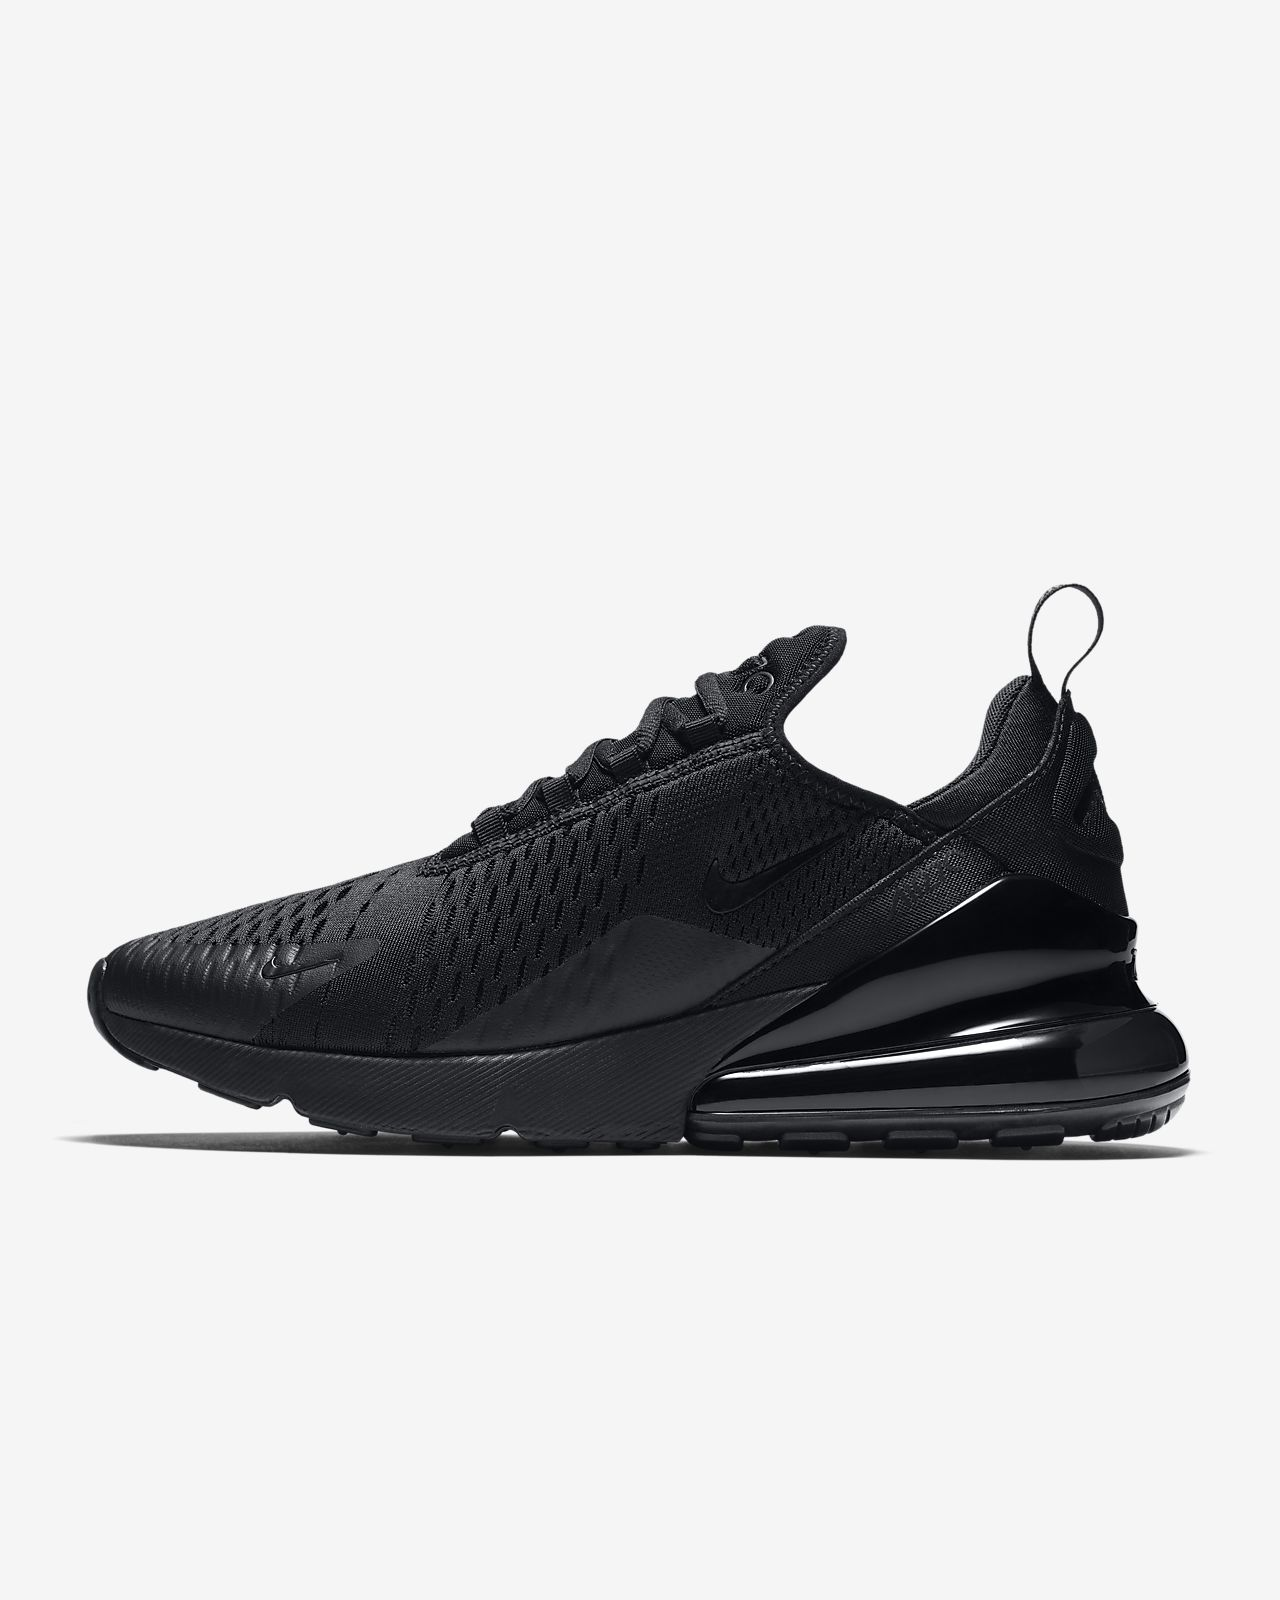 d03744f62d0eb8 Nike Air Max 270 Men s Shoe. Nike.com CA